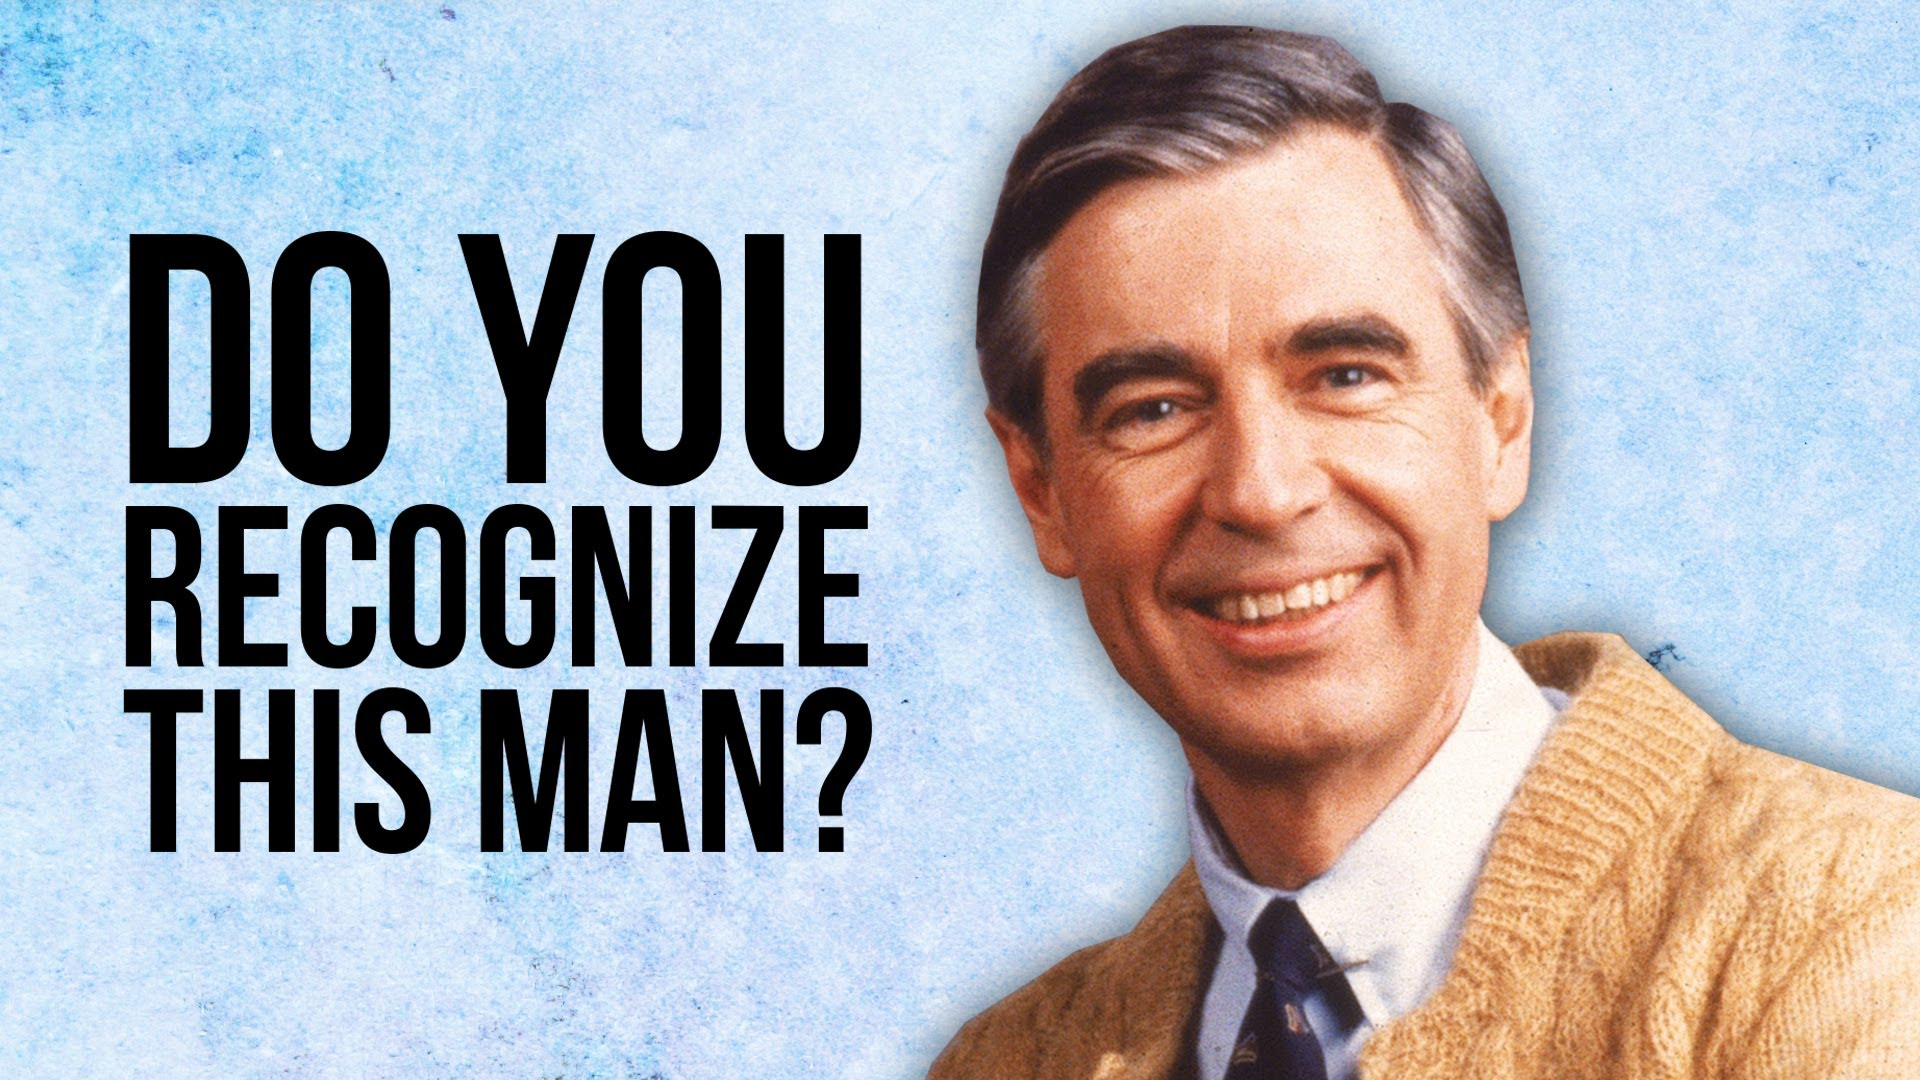 An Explanation Of Mr Rogers Those Who Never Saw His Show And A Lovely Reminder For Those Who Did